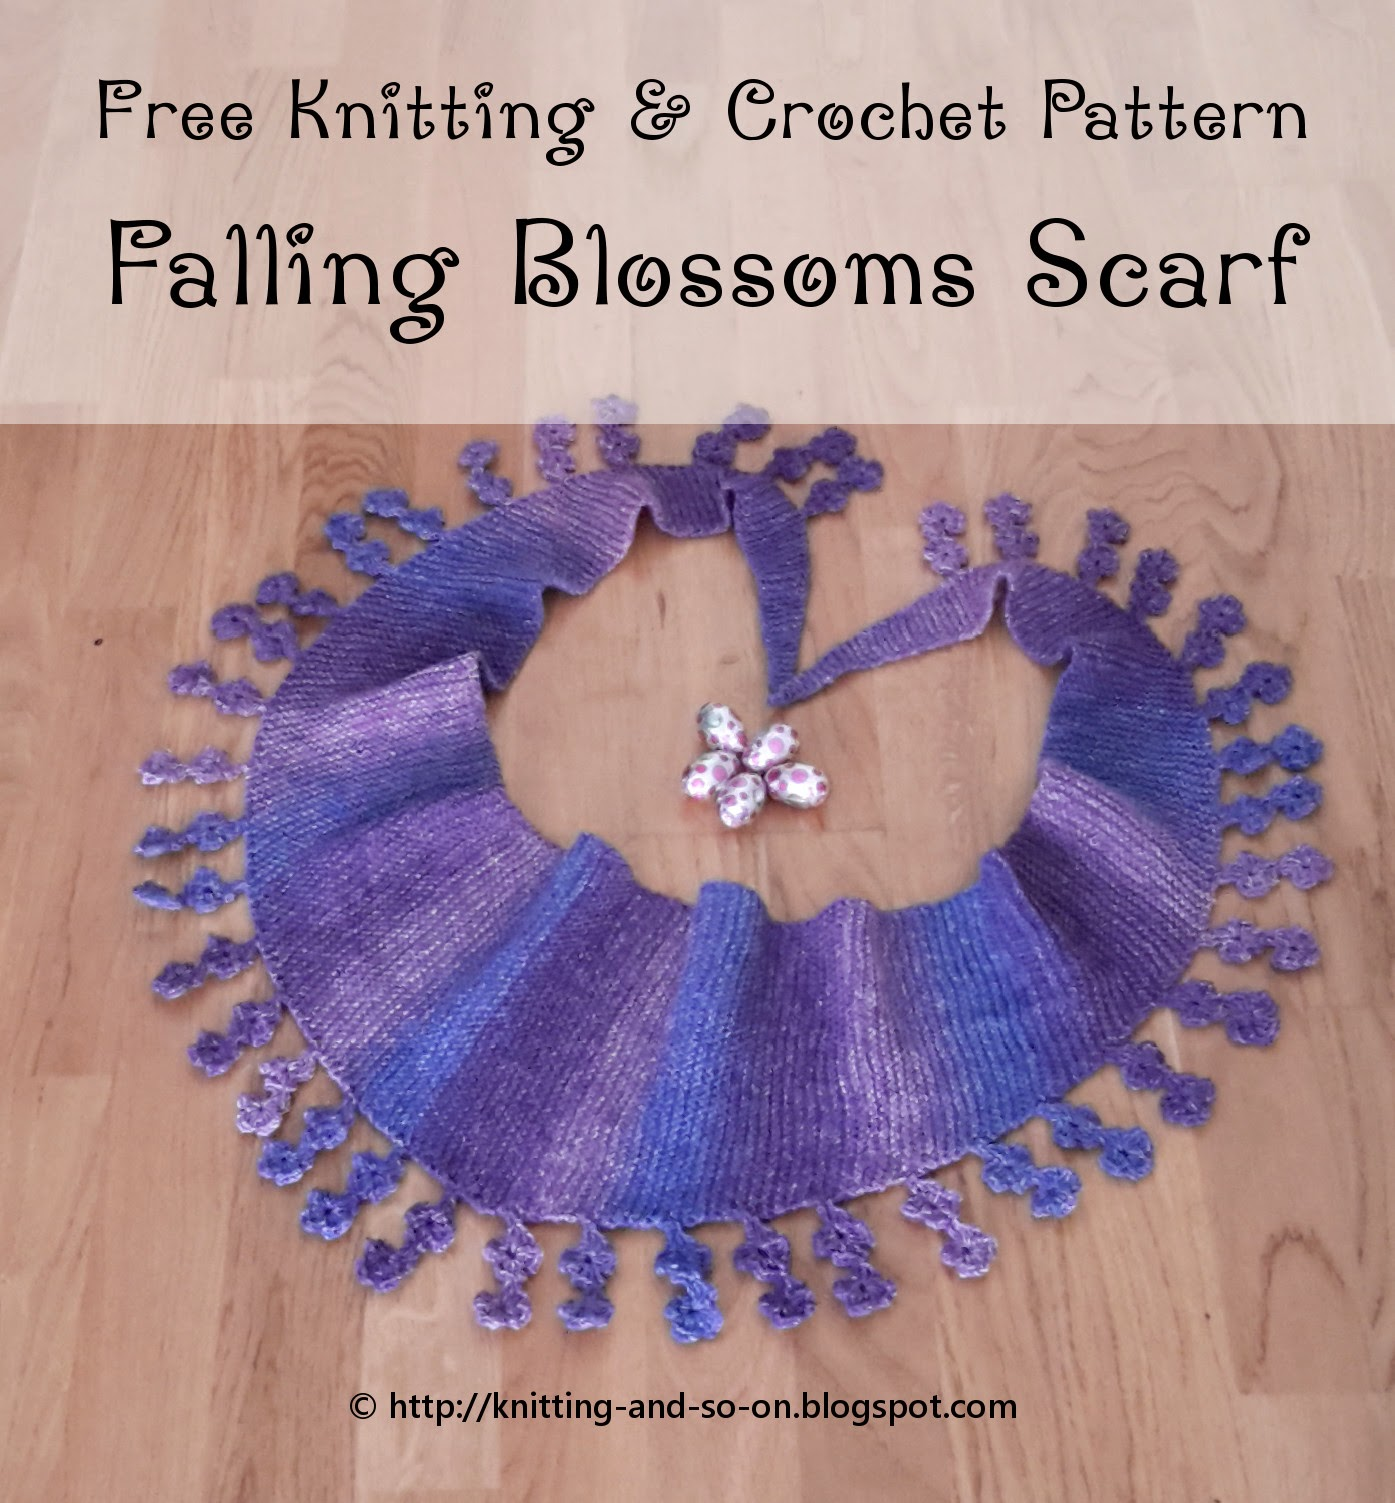 Free Pattern: Falling Blossoms Scarf (Knitting/Crochet Combo); http://knitting-and-so-on.blogspot.com